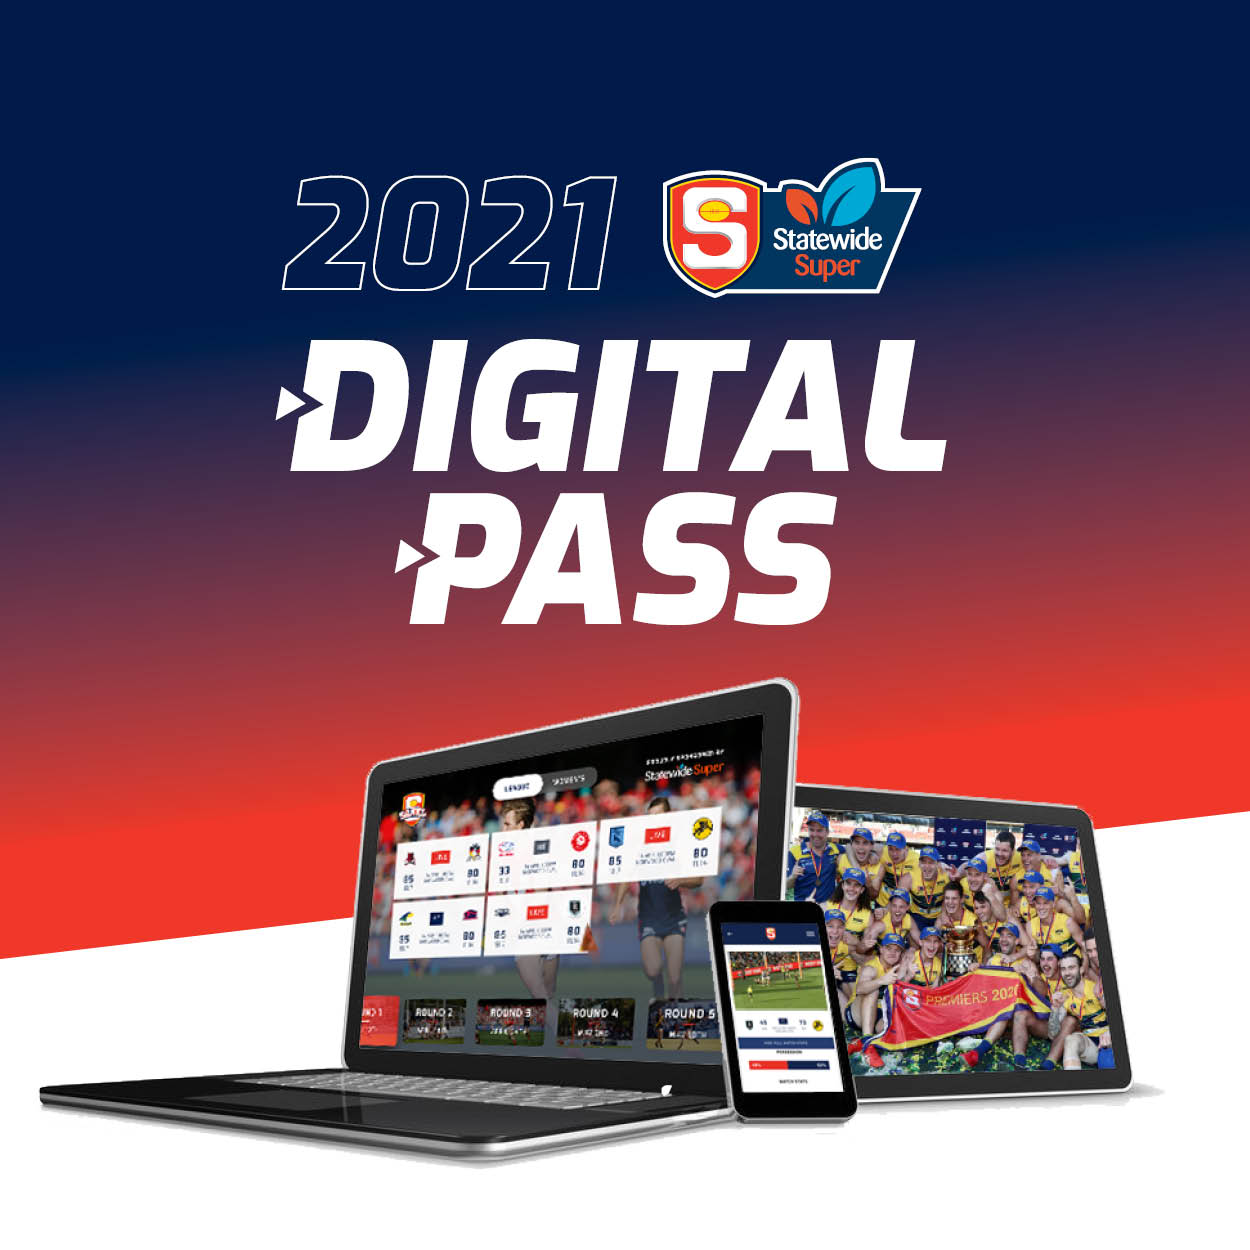 2021 Statewide Super League Season Digital Pass